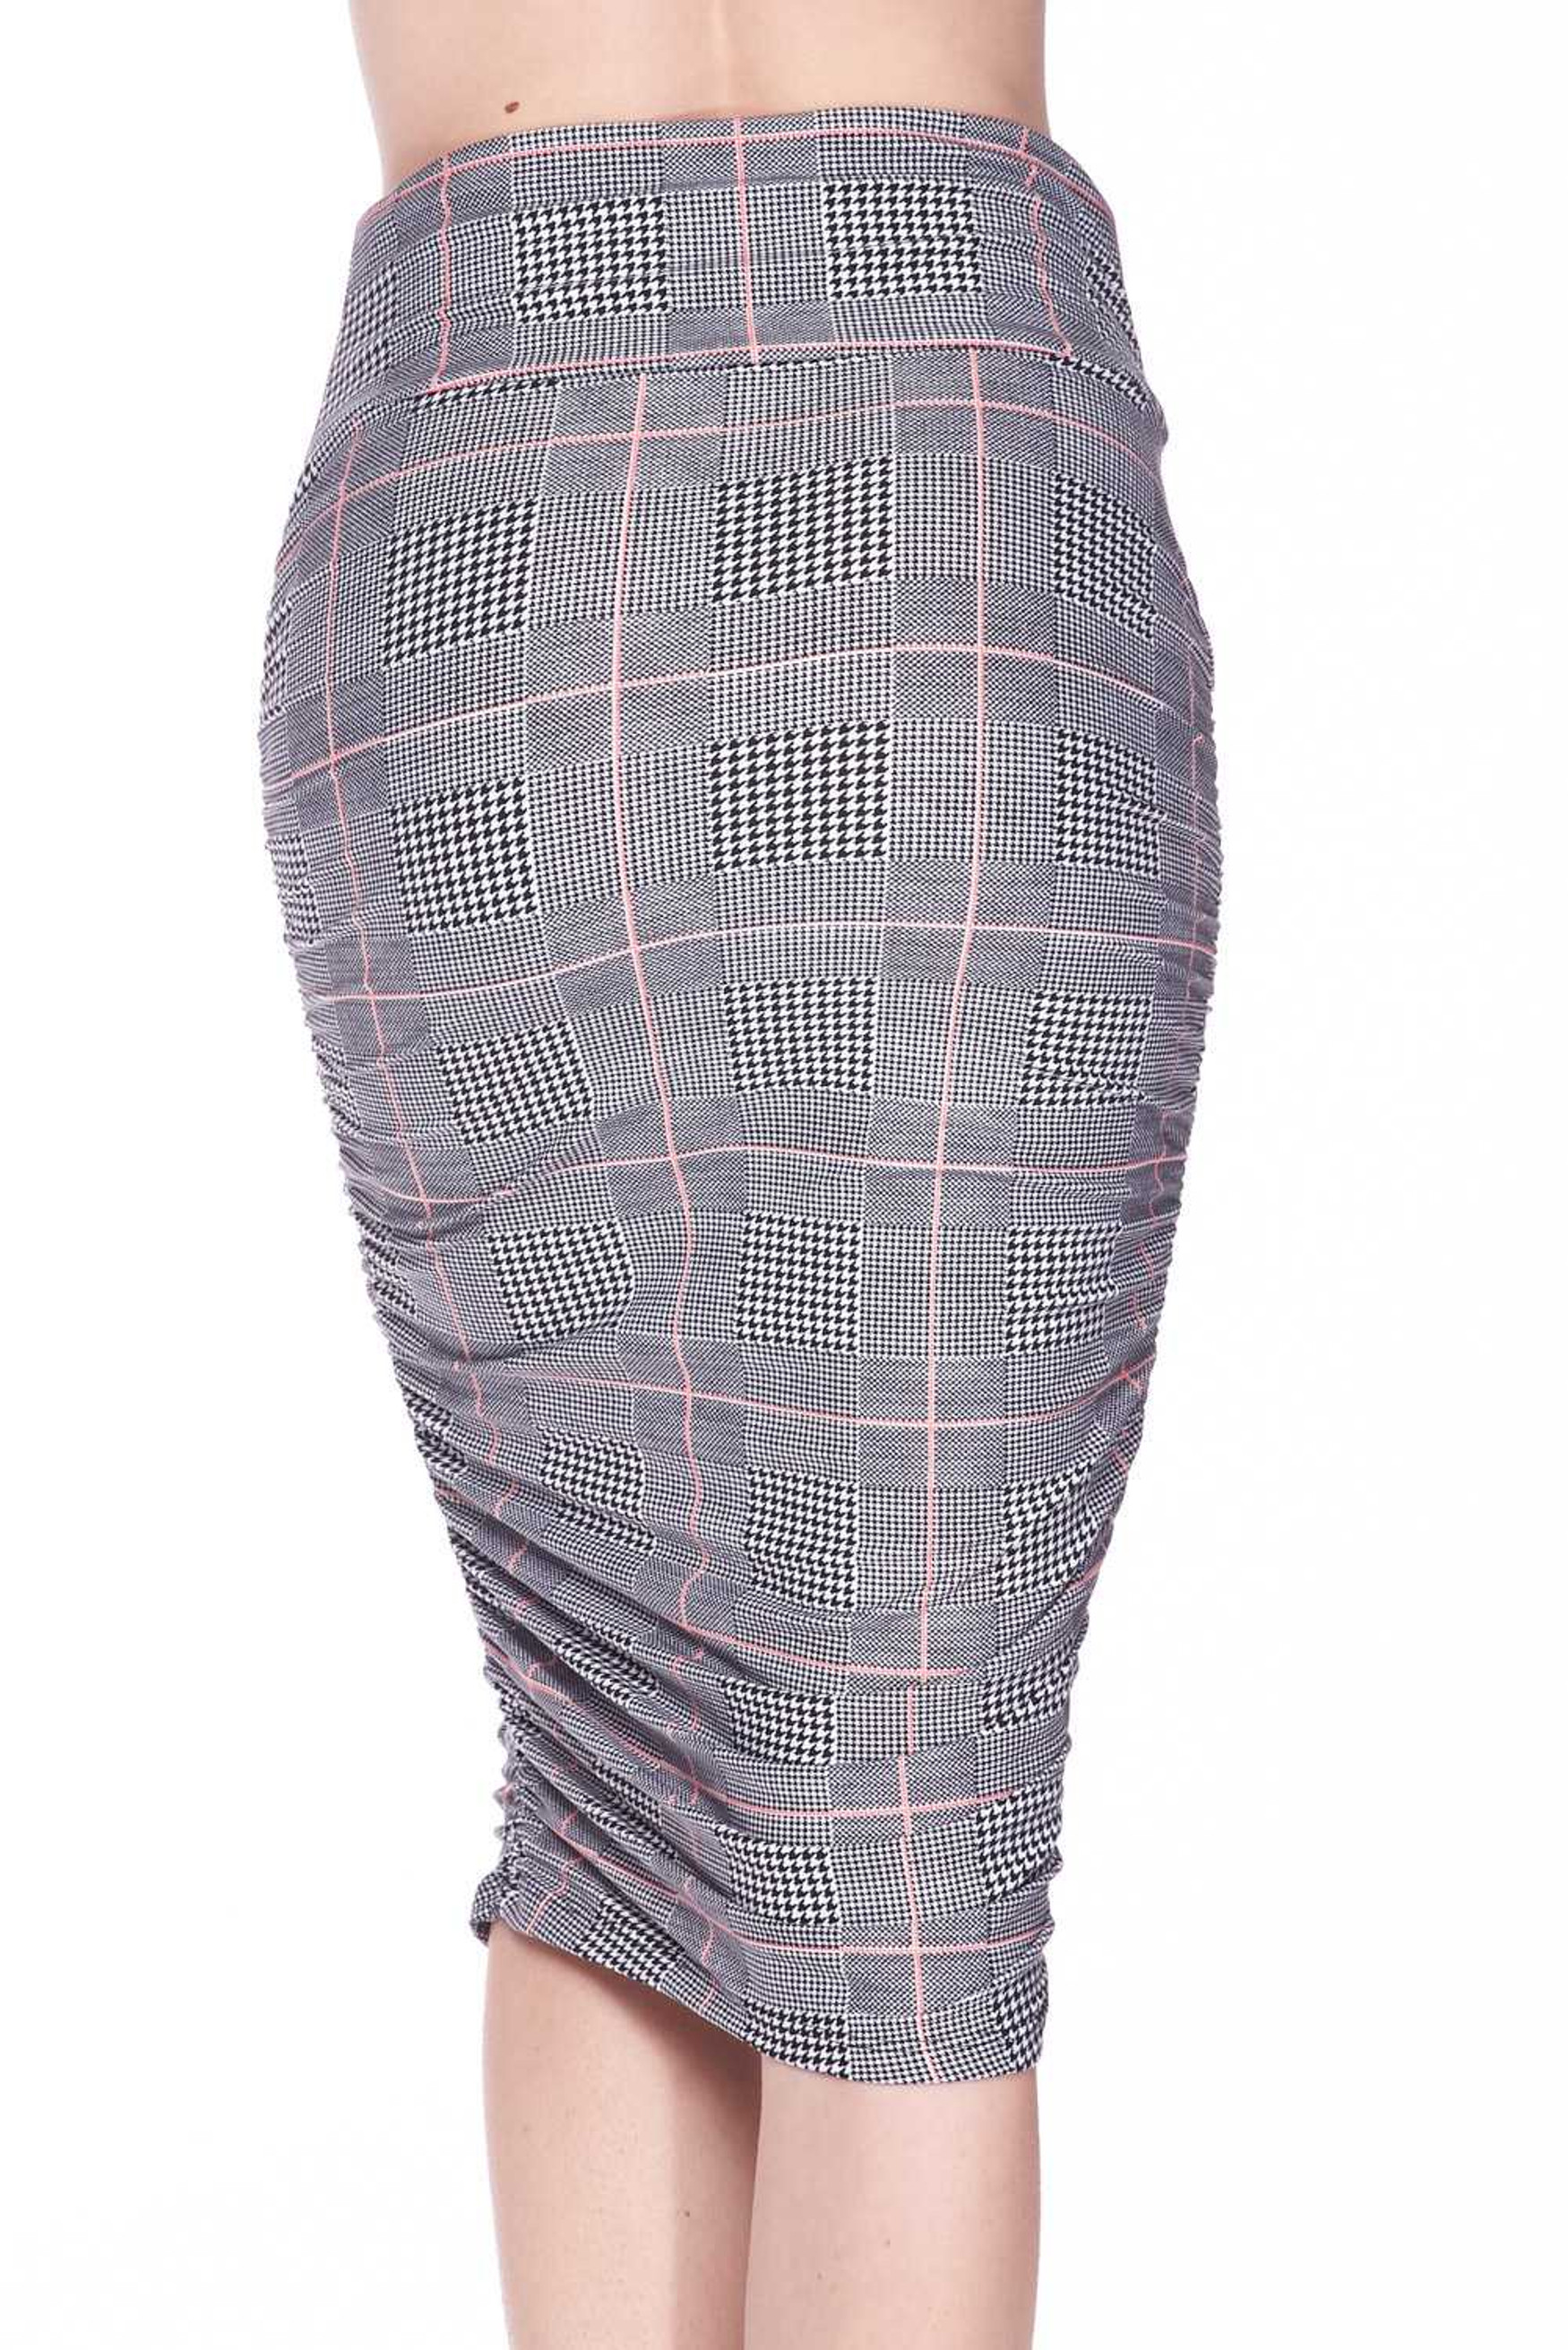 Buttery Soft Coral Accent Glenn Plaid Pencil Skirt